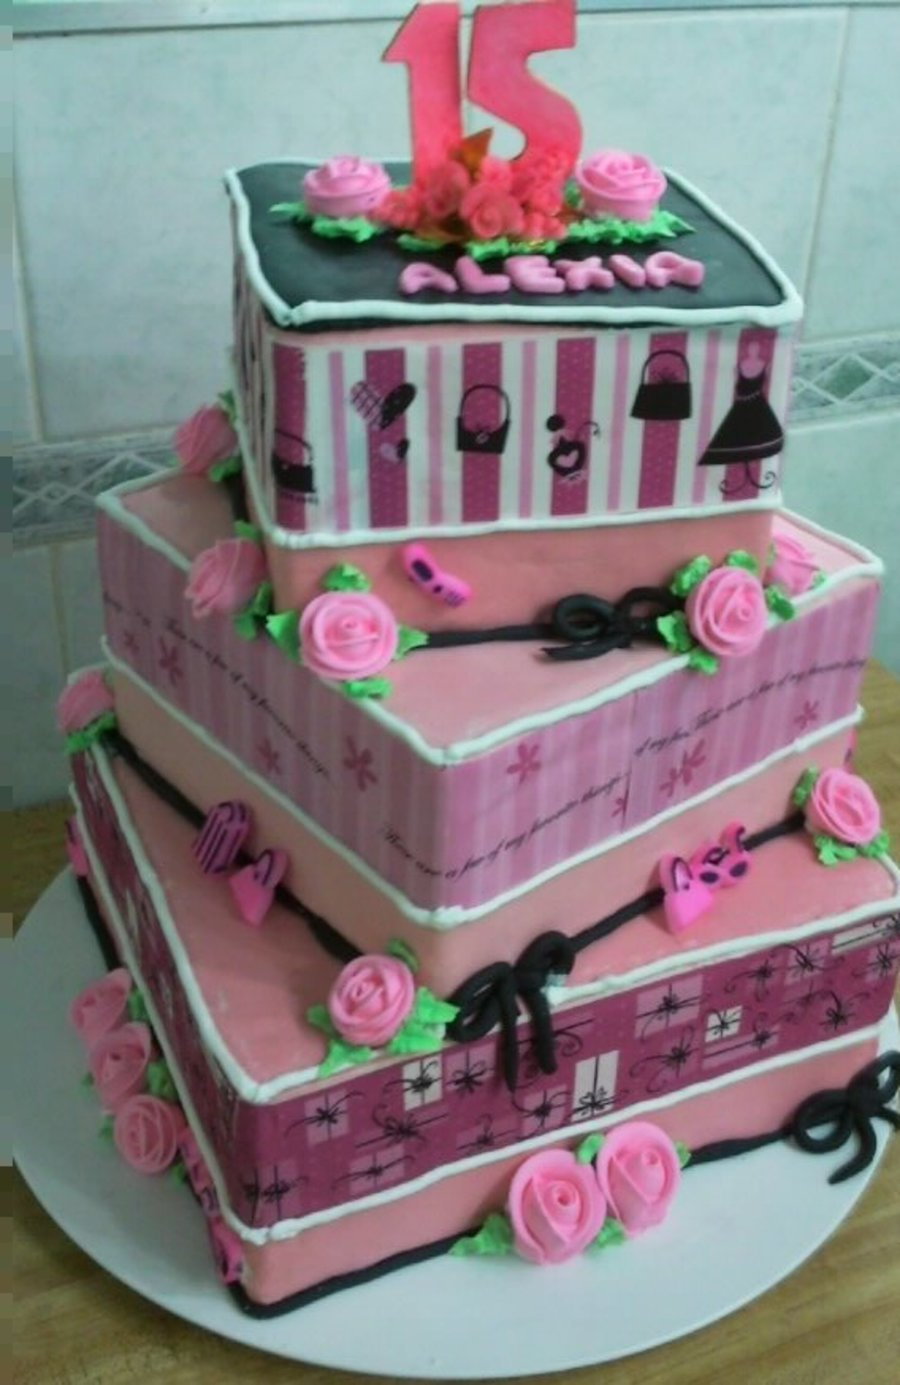 Fashionista Fifteen Birthday Cake on Cake Central